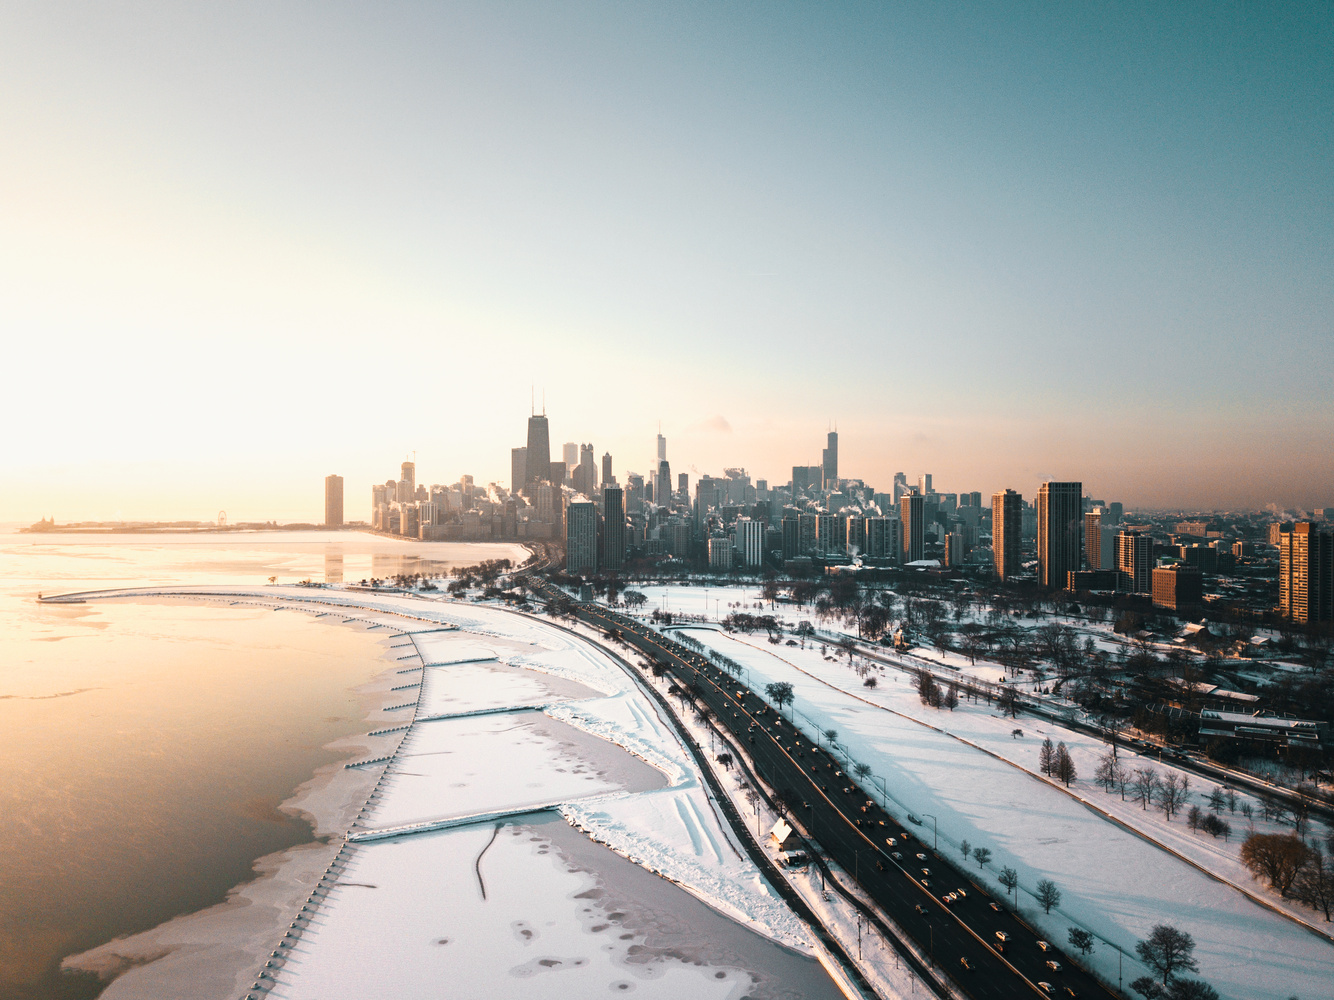 Chicago 2018 #1 by Logan Armstrong